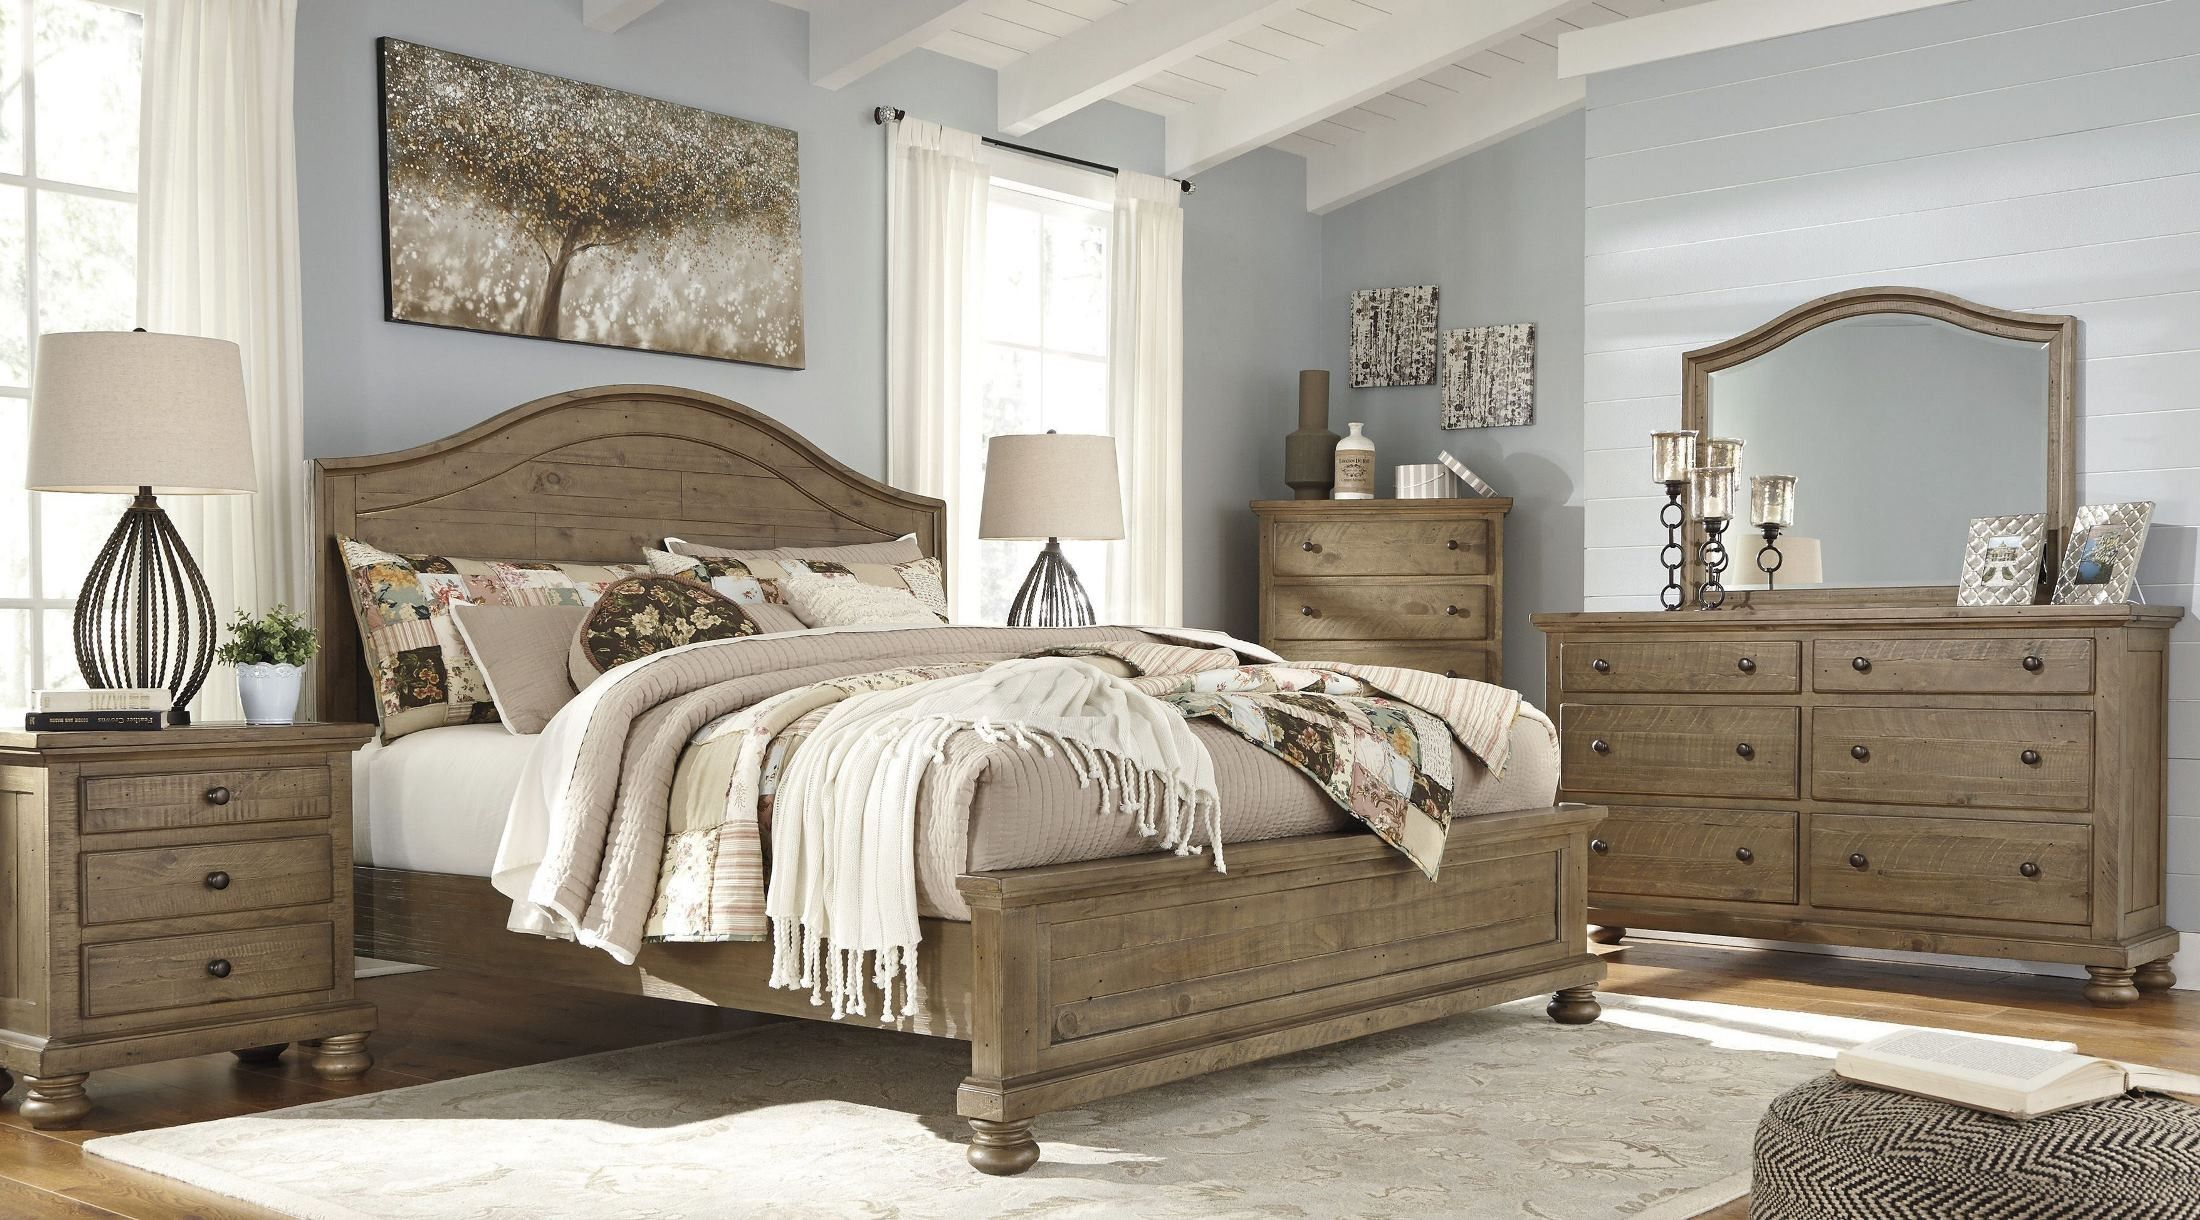 light colored bedroom sets